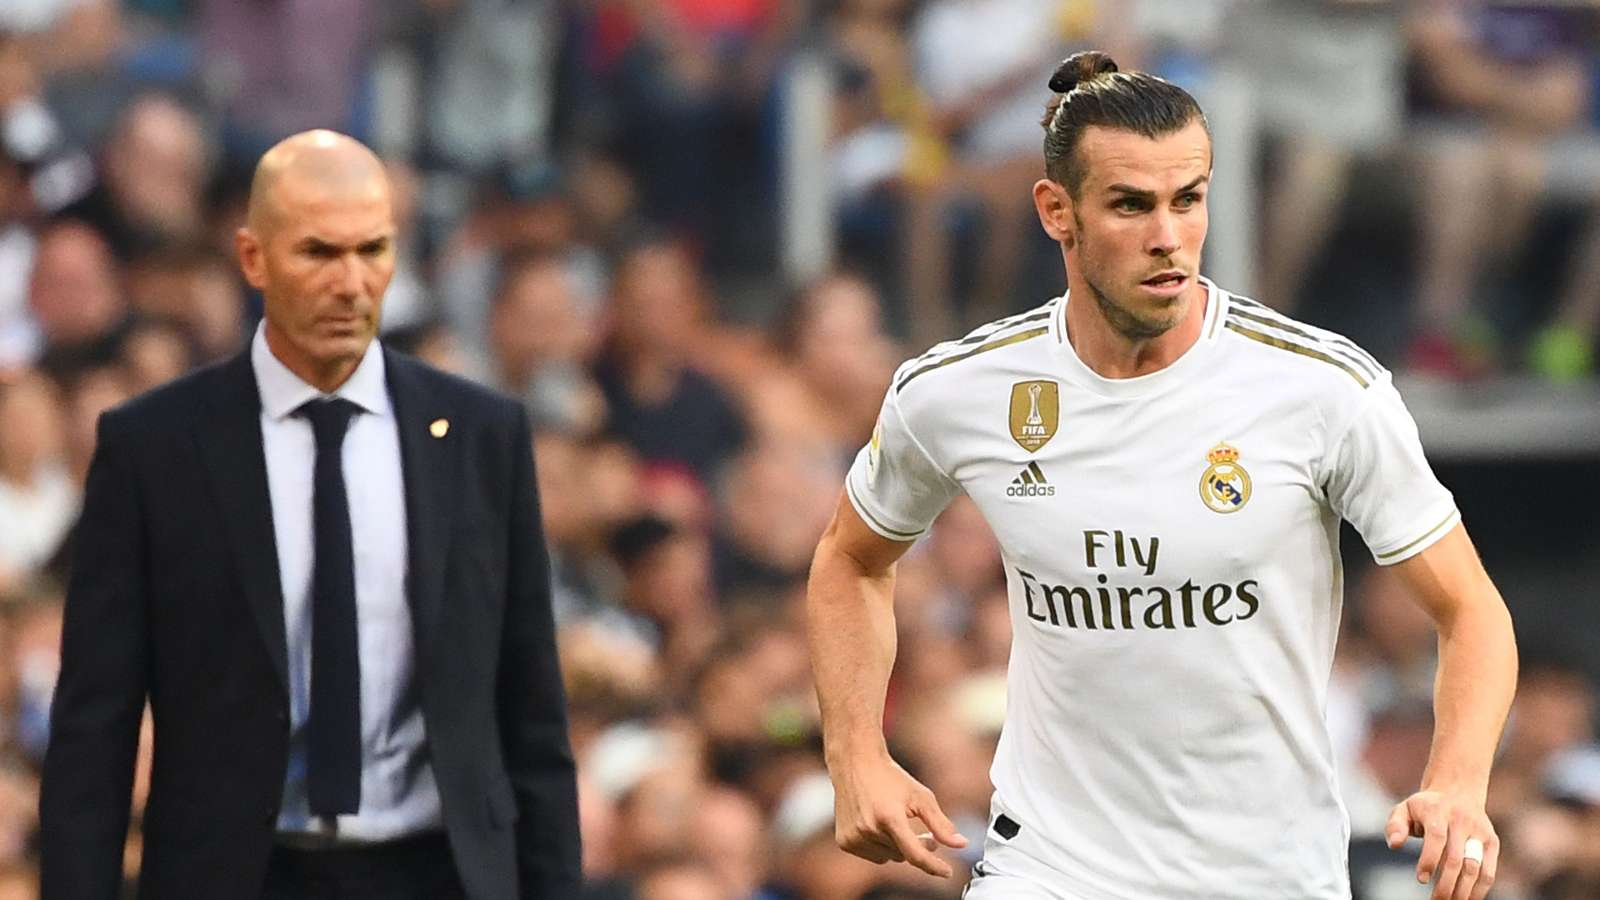 Real Madrid Conference | Zidane: Bale cannot be banned from playing golf